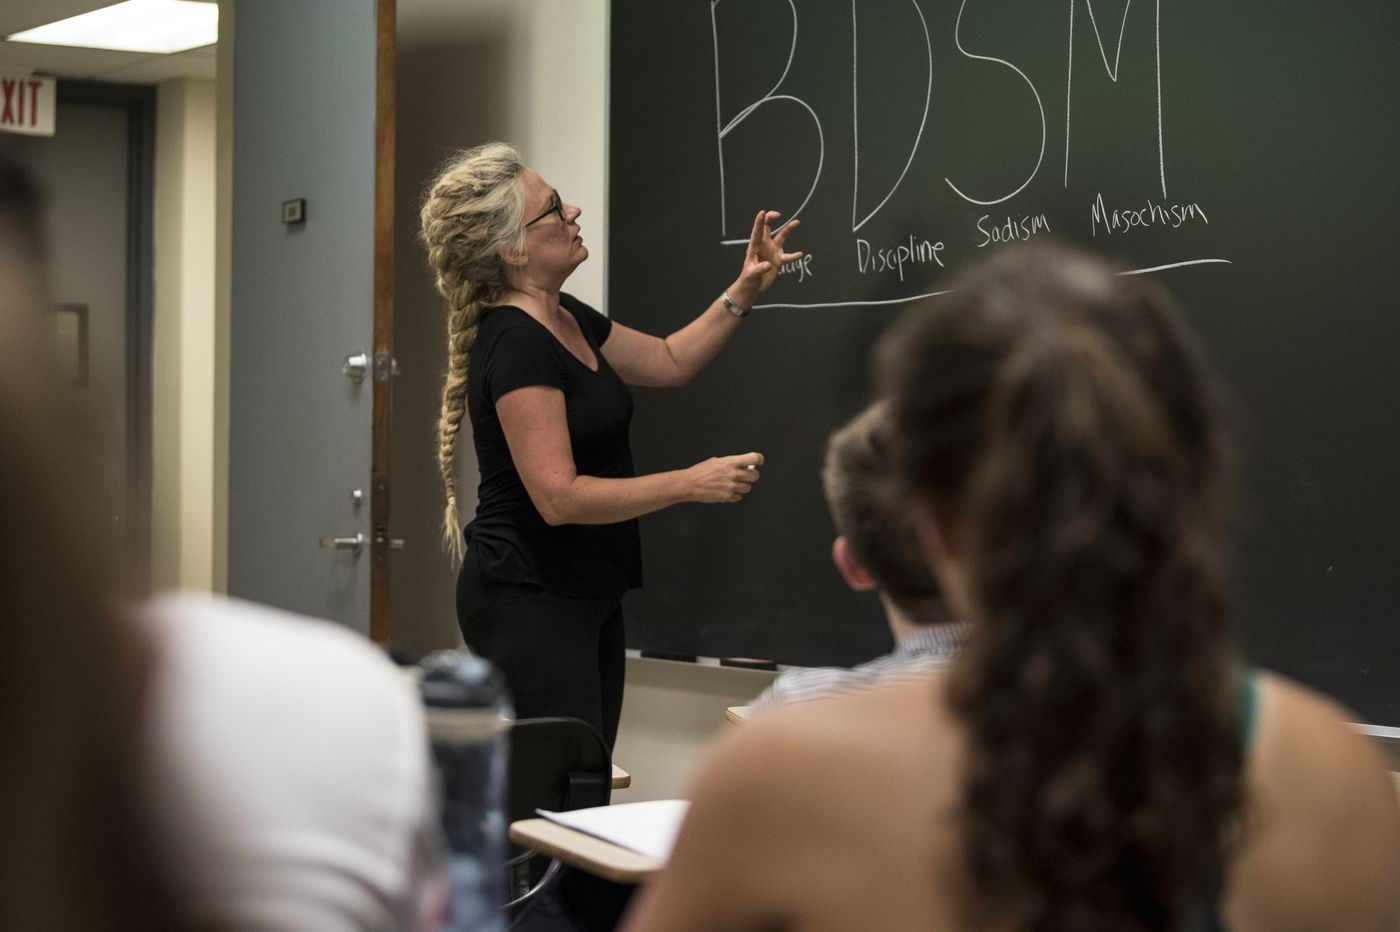 Philly sex shop offers college classes: 'It needs to be hands-on because that's what sexuality is'